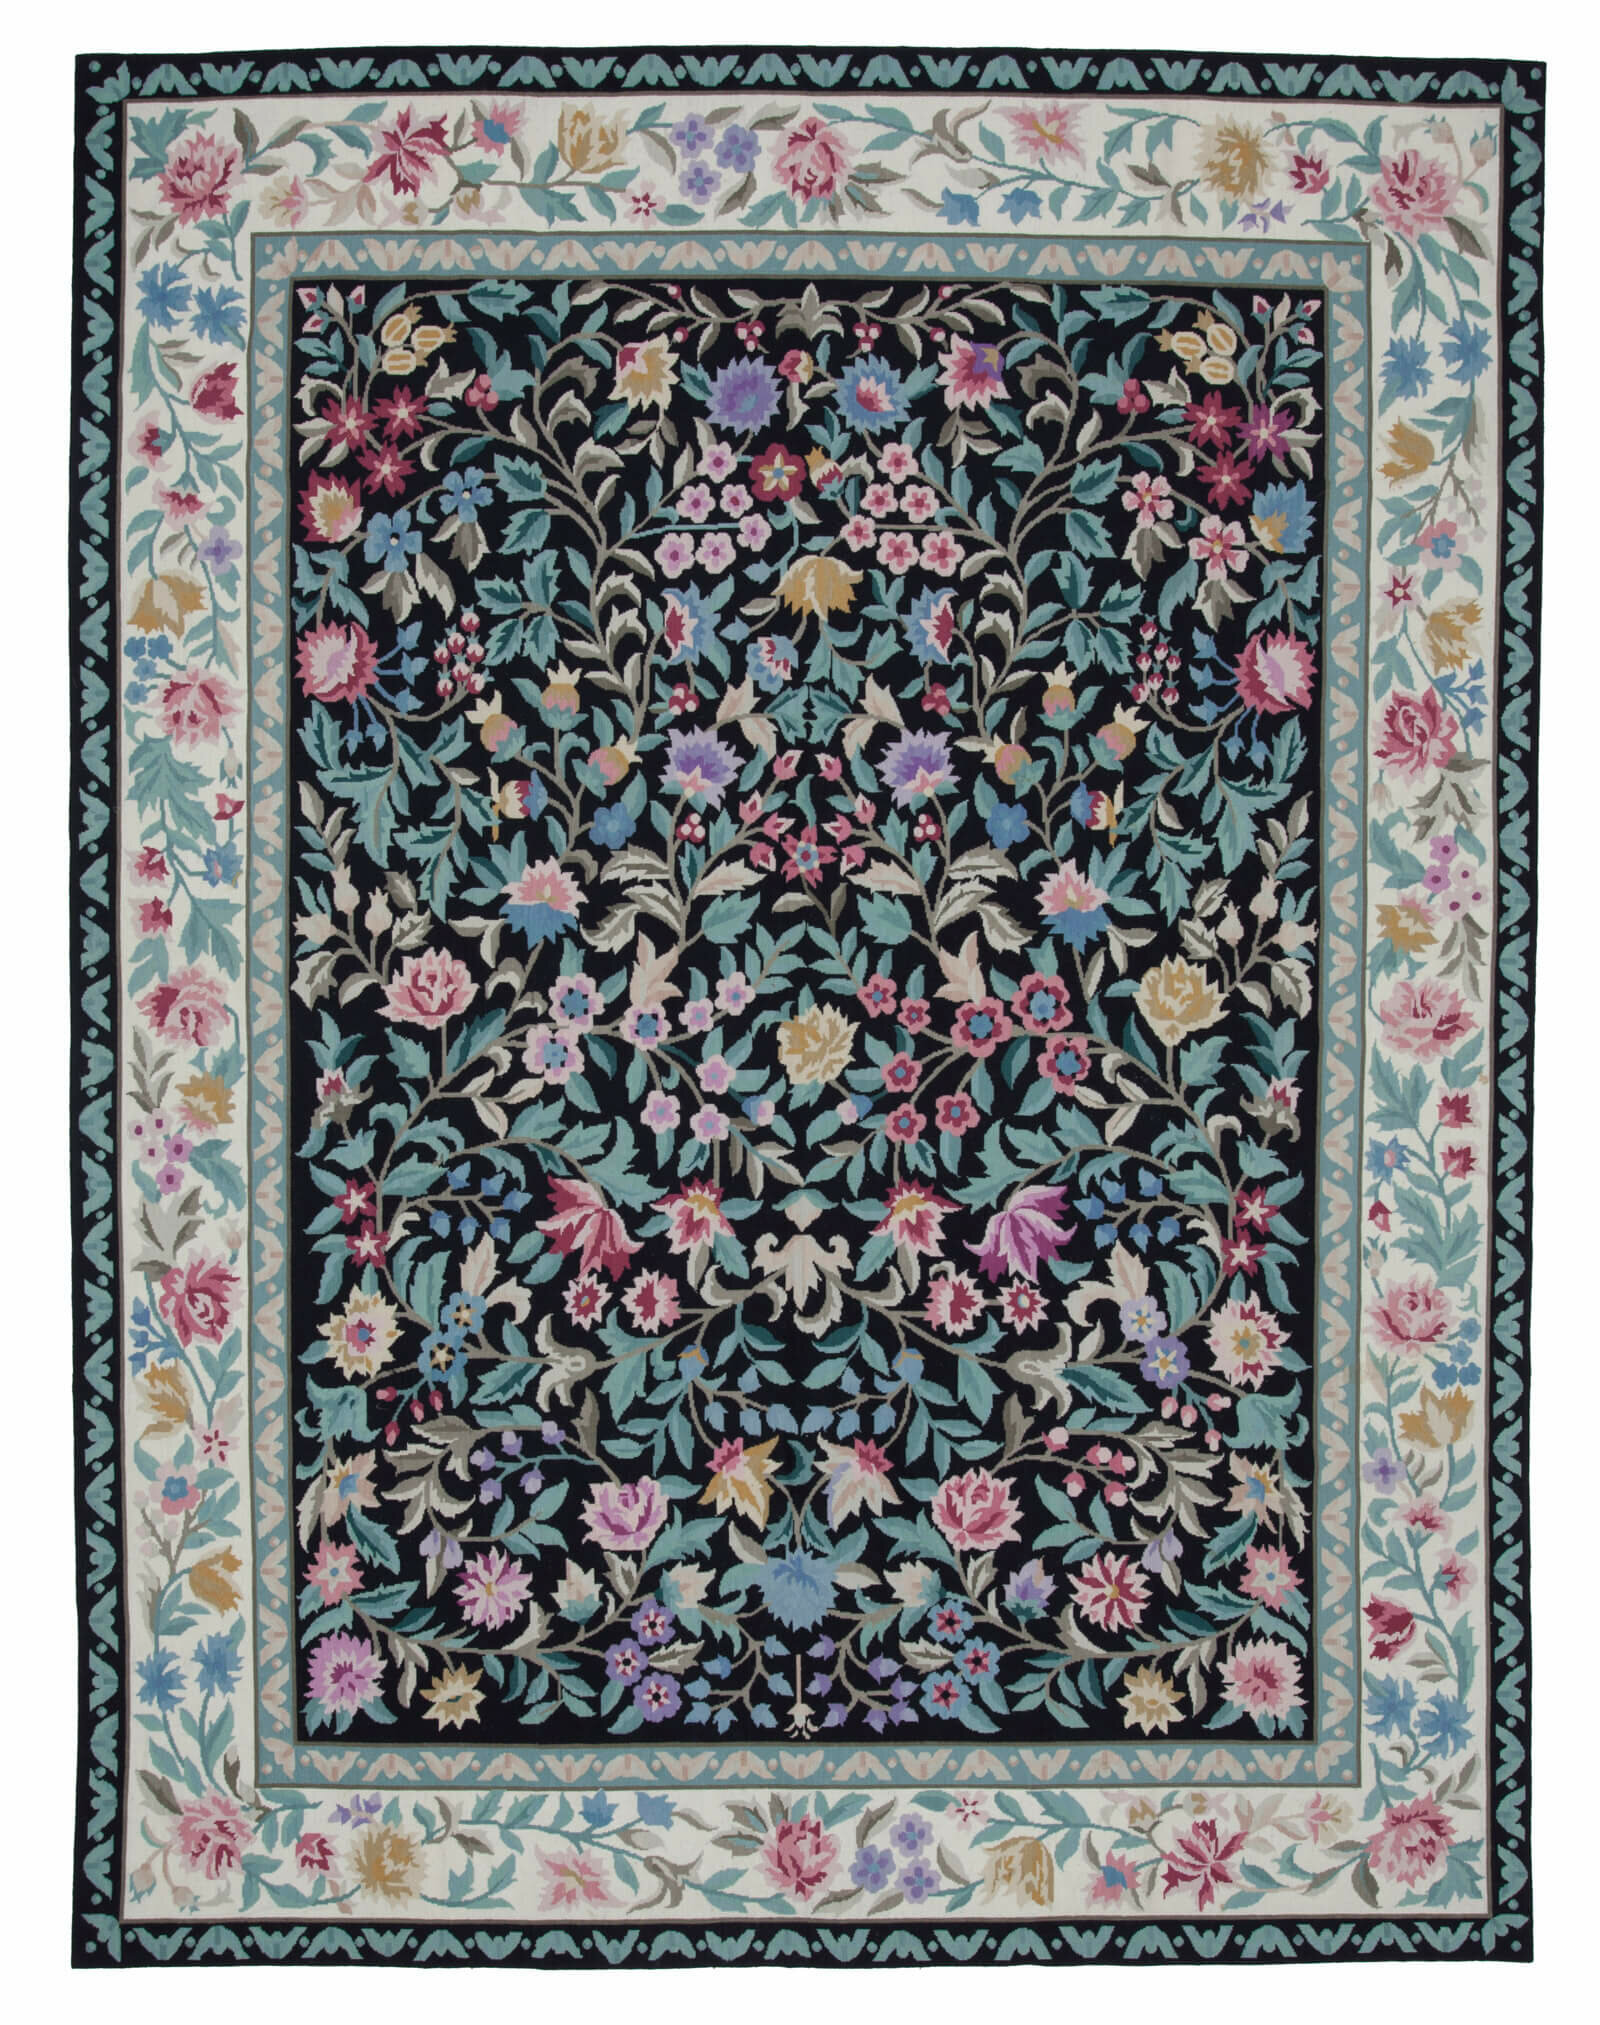 Bespoky Vintage Rugs One Of A Kind Floral Hand Knotted 8 X 10 Teal Black Pink Area Rug Perigold